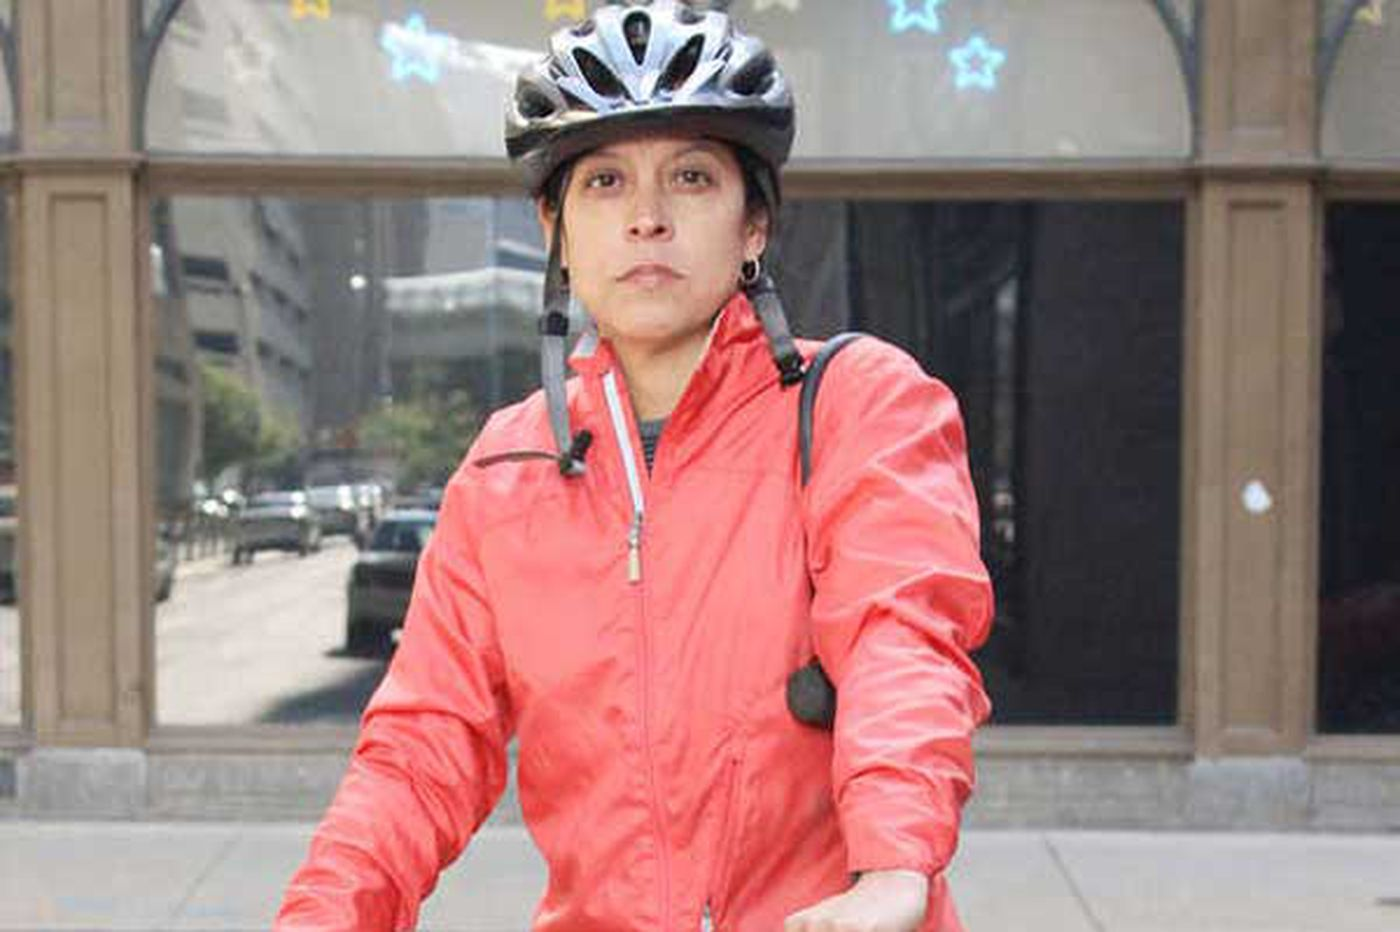 Biking to work - where only the strong survive